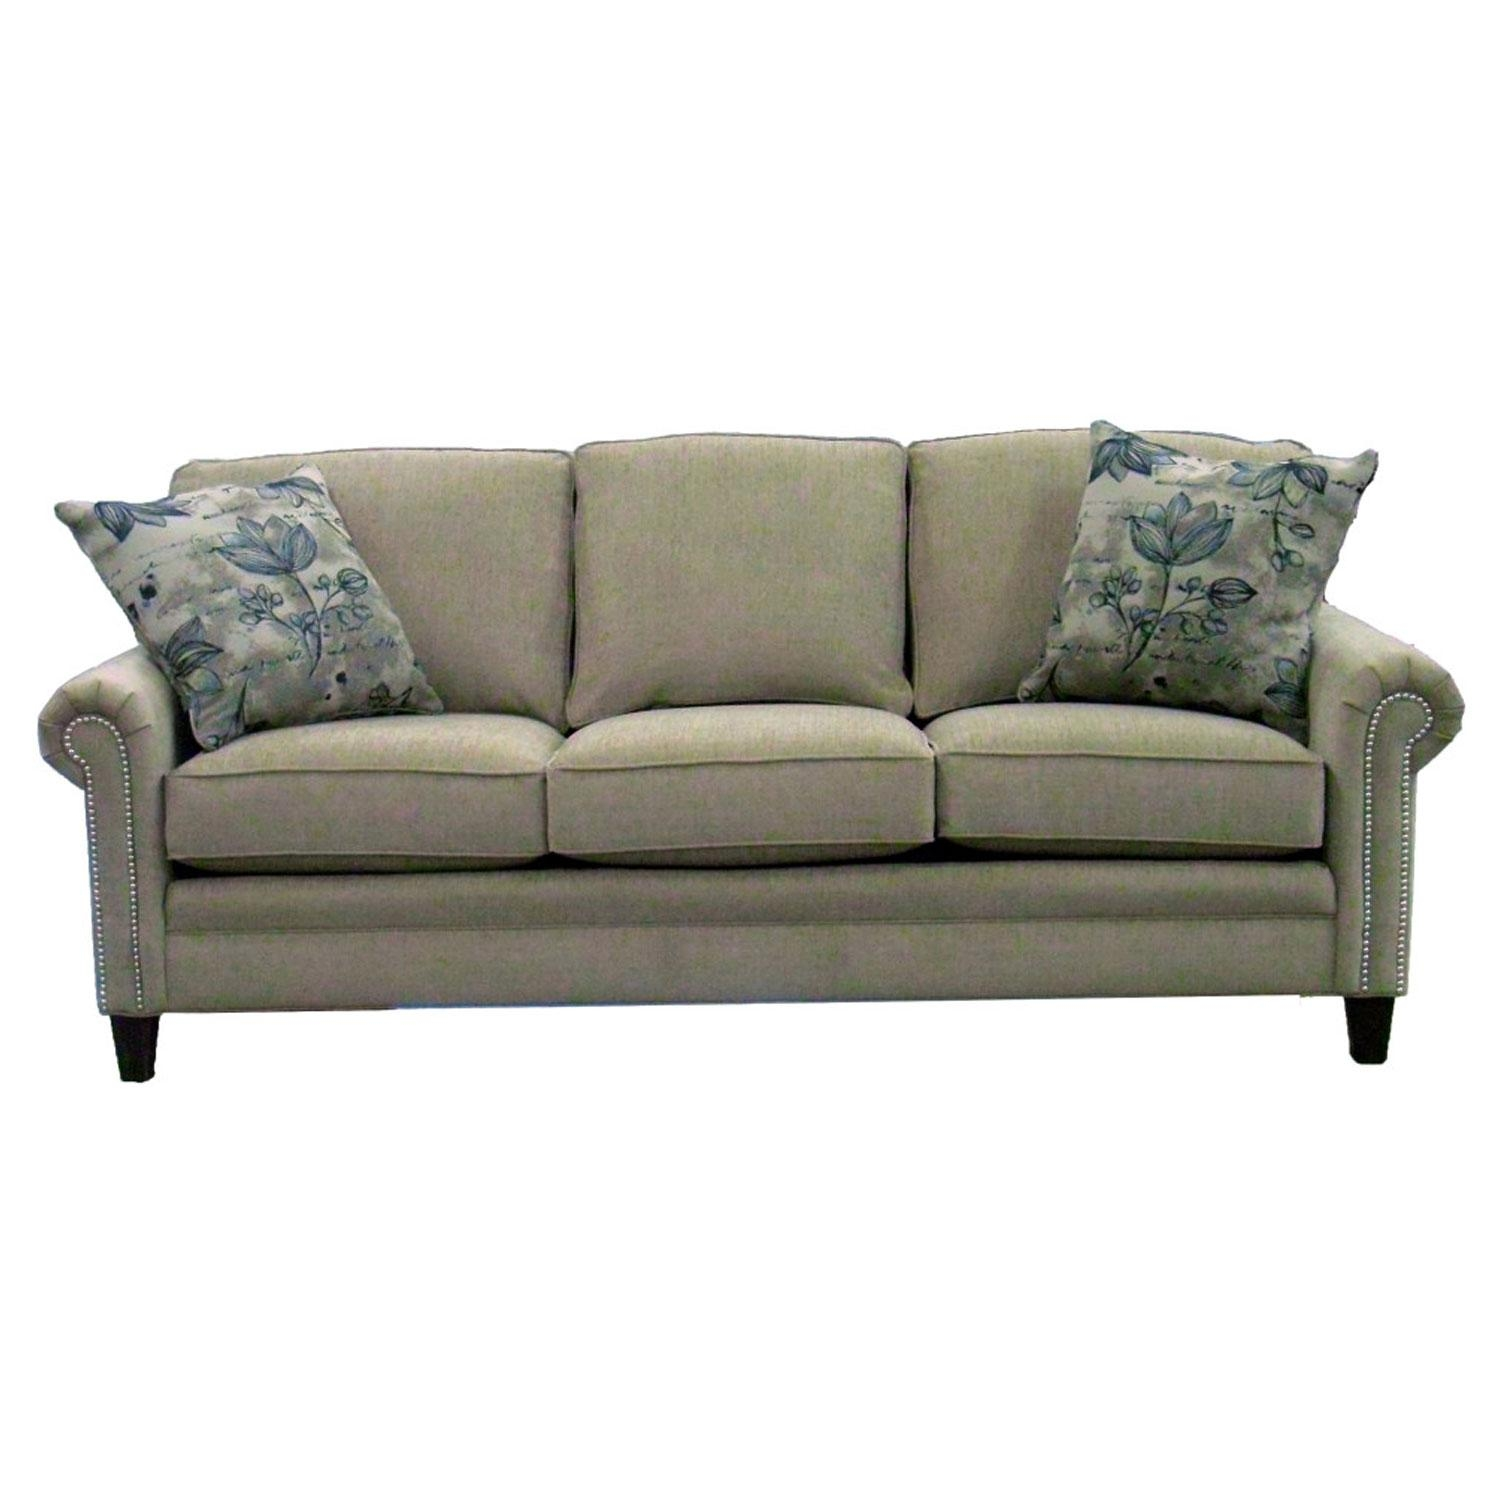 Featured Image of Smith Brothers Sofas